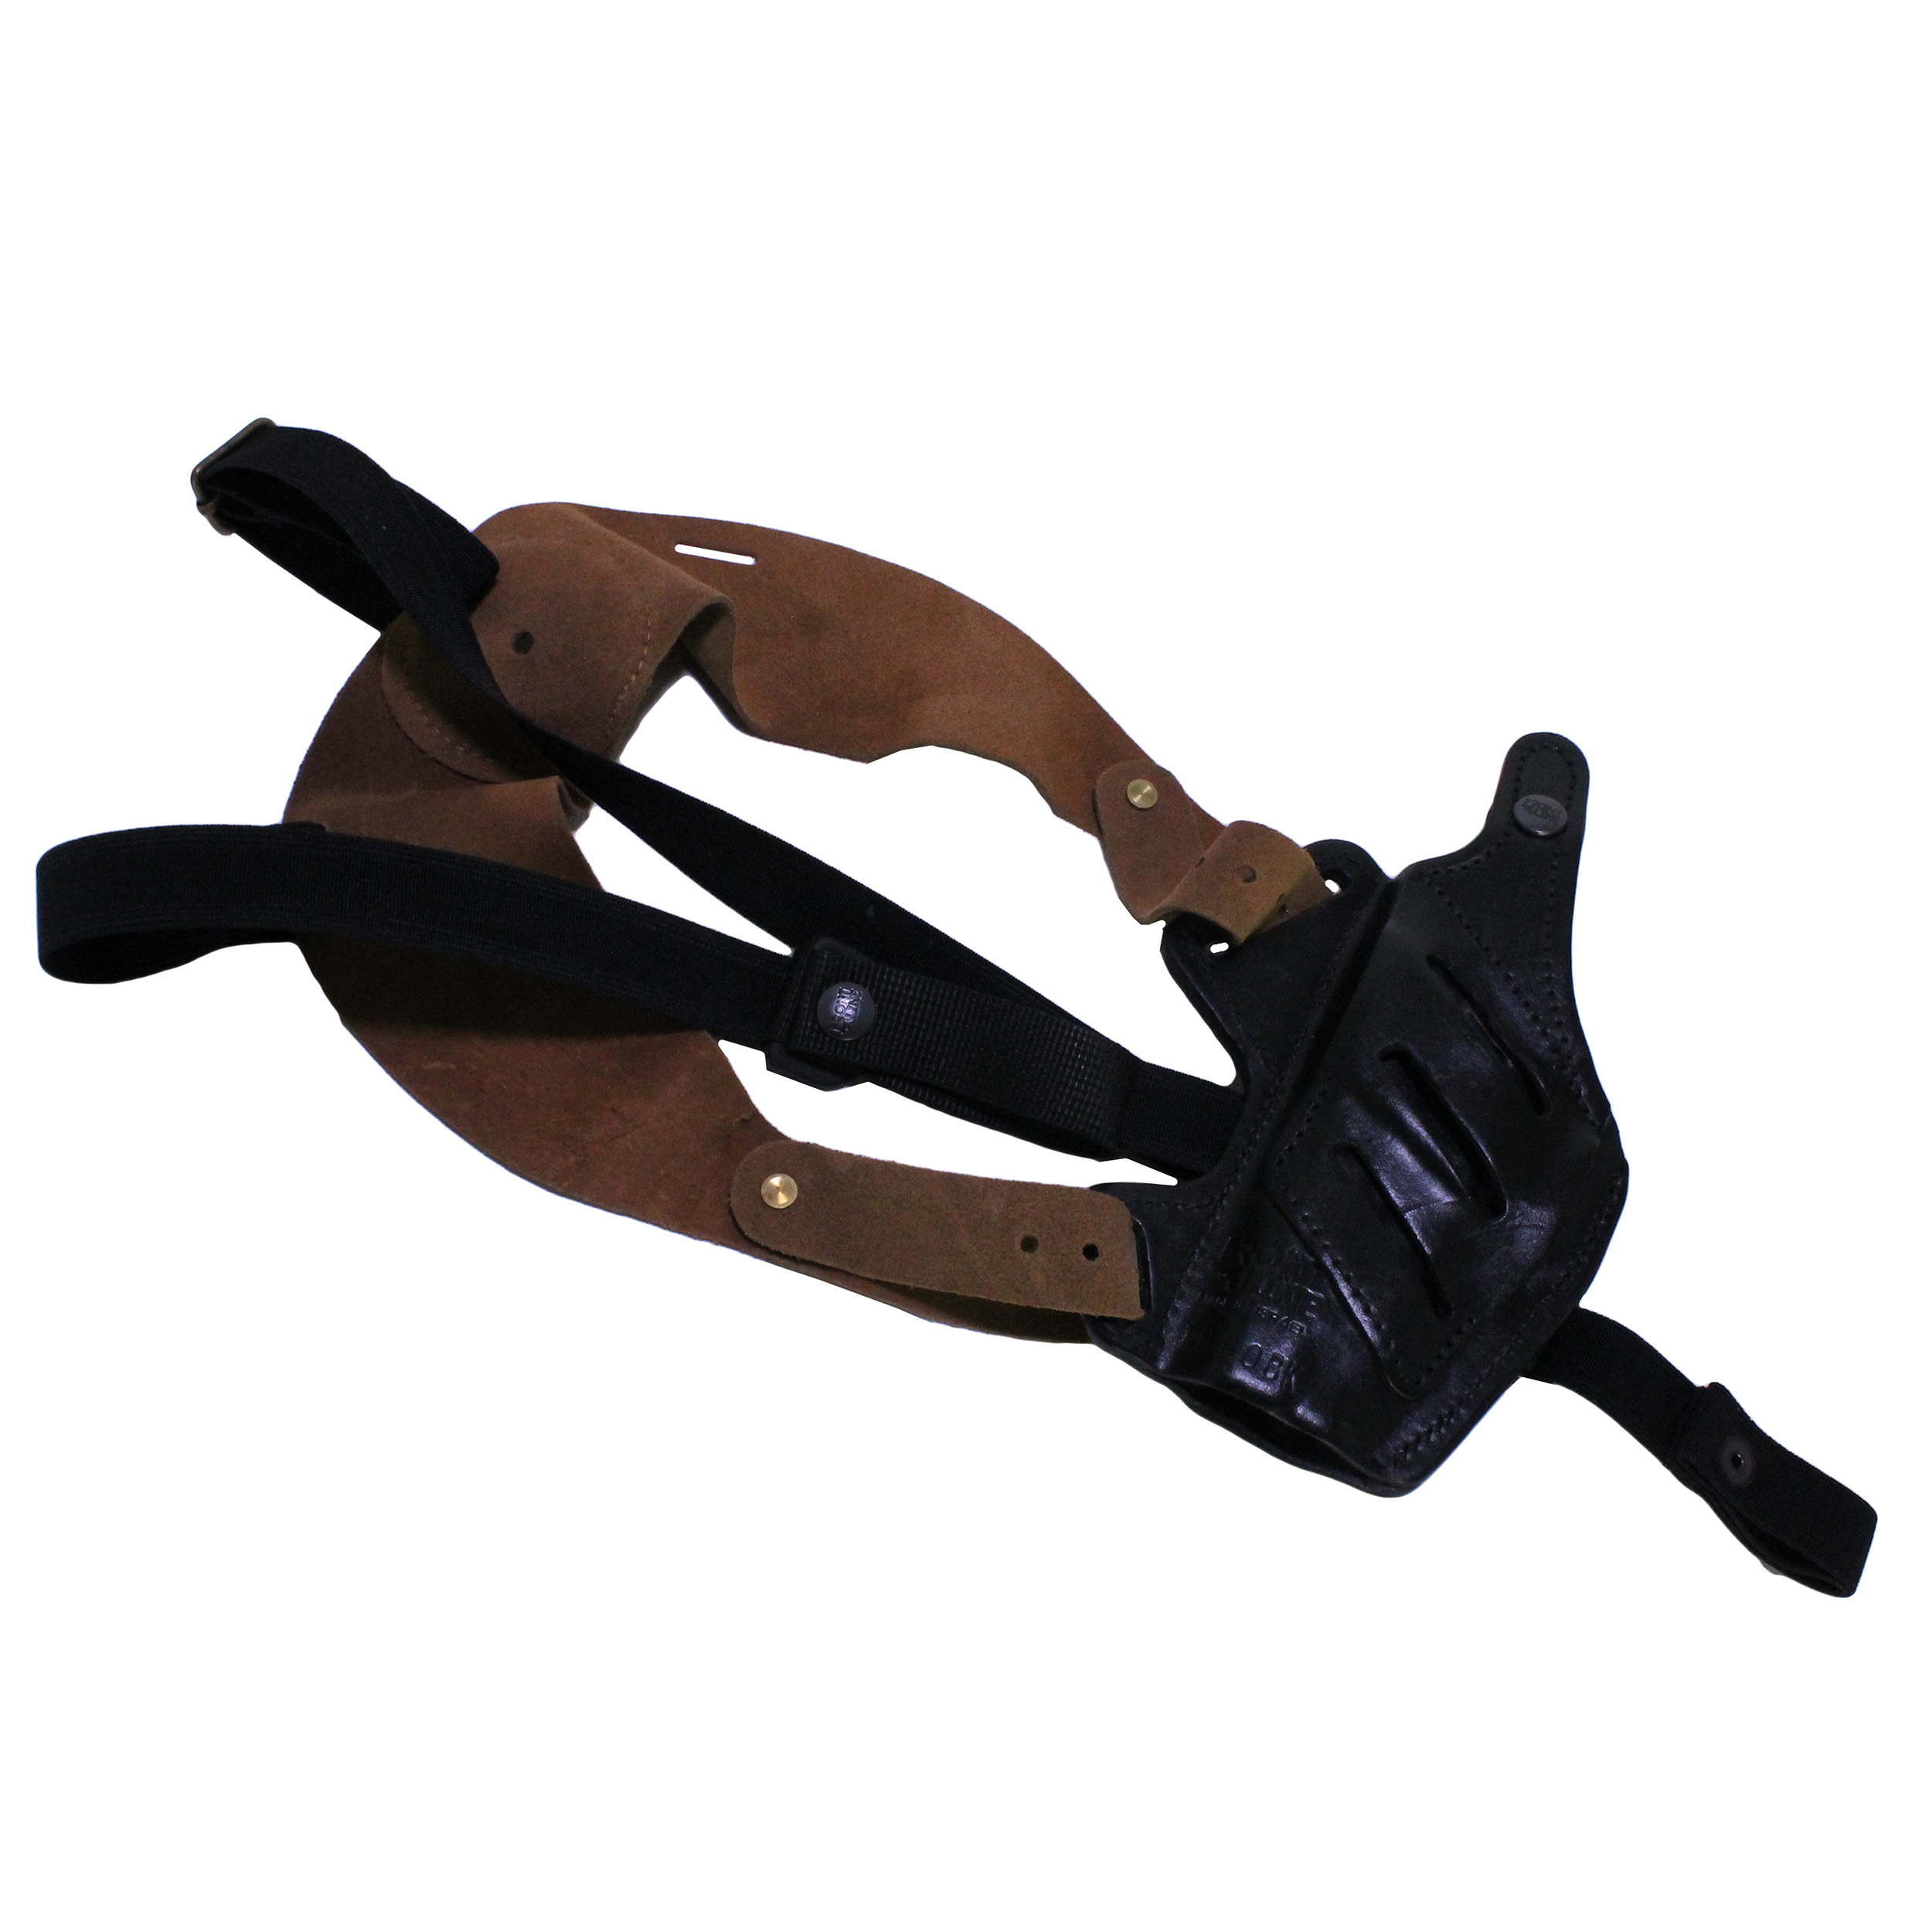 Frontline Fast Draw 5 Way Leather Shoulder Holster Sig Sauer P226, Black, Right Hand